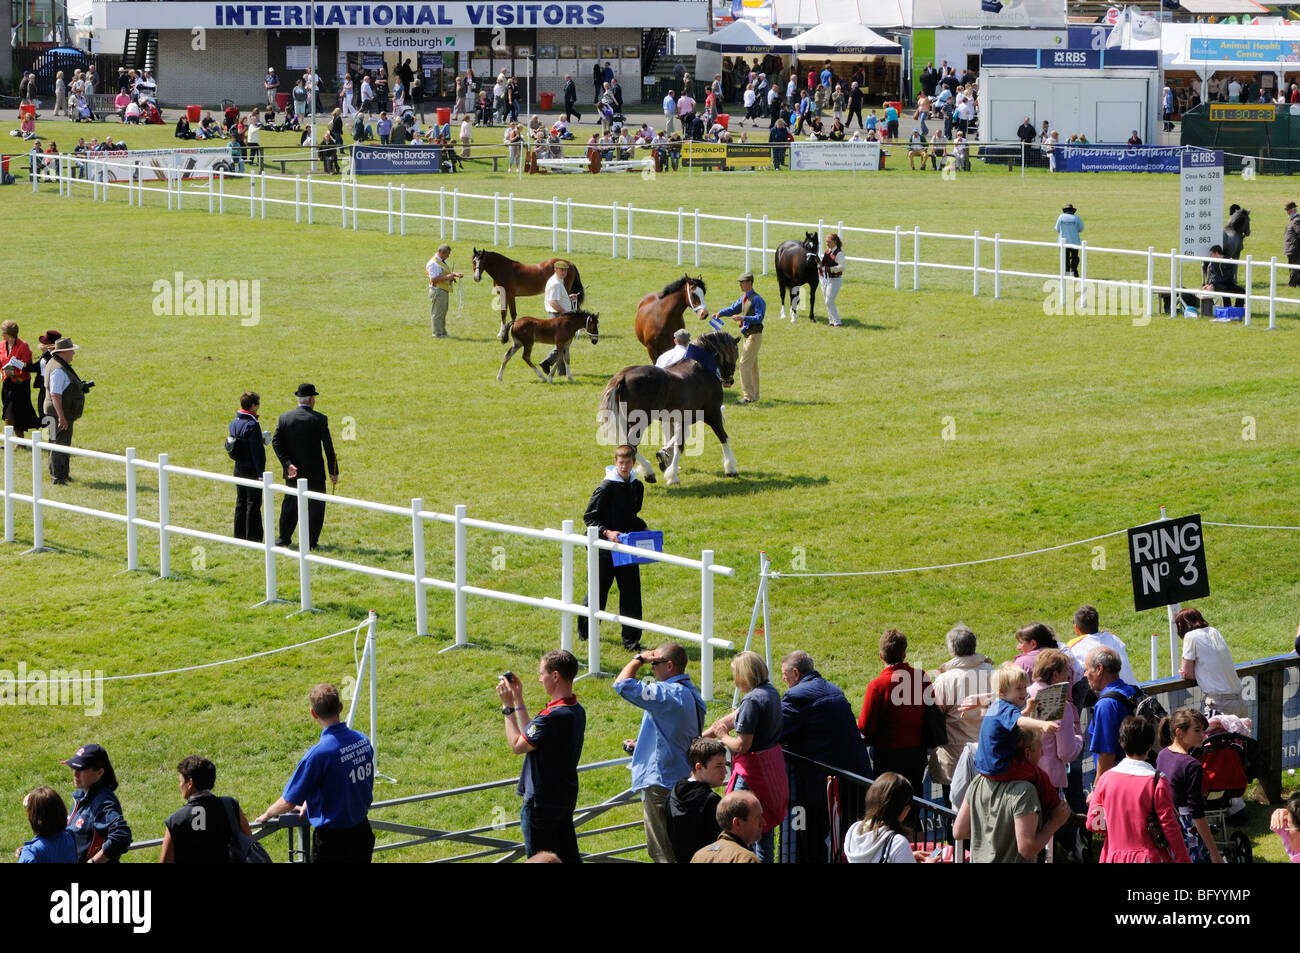 Judging of the pony competitions in the Main Ring at the 2009 Royal Highland Show, Edinburgh. - Stock Image